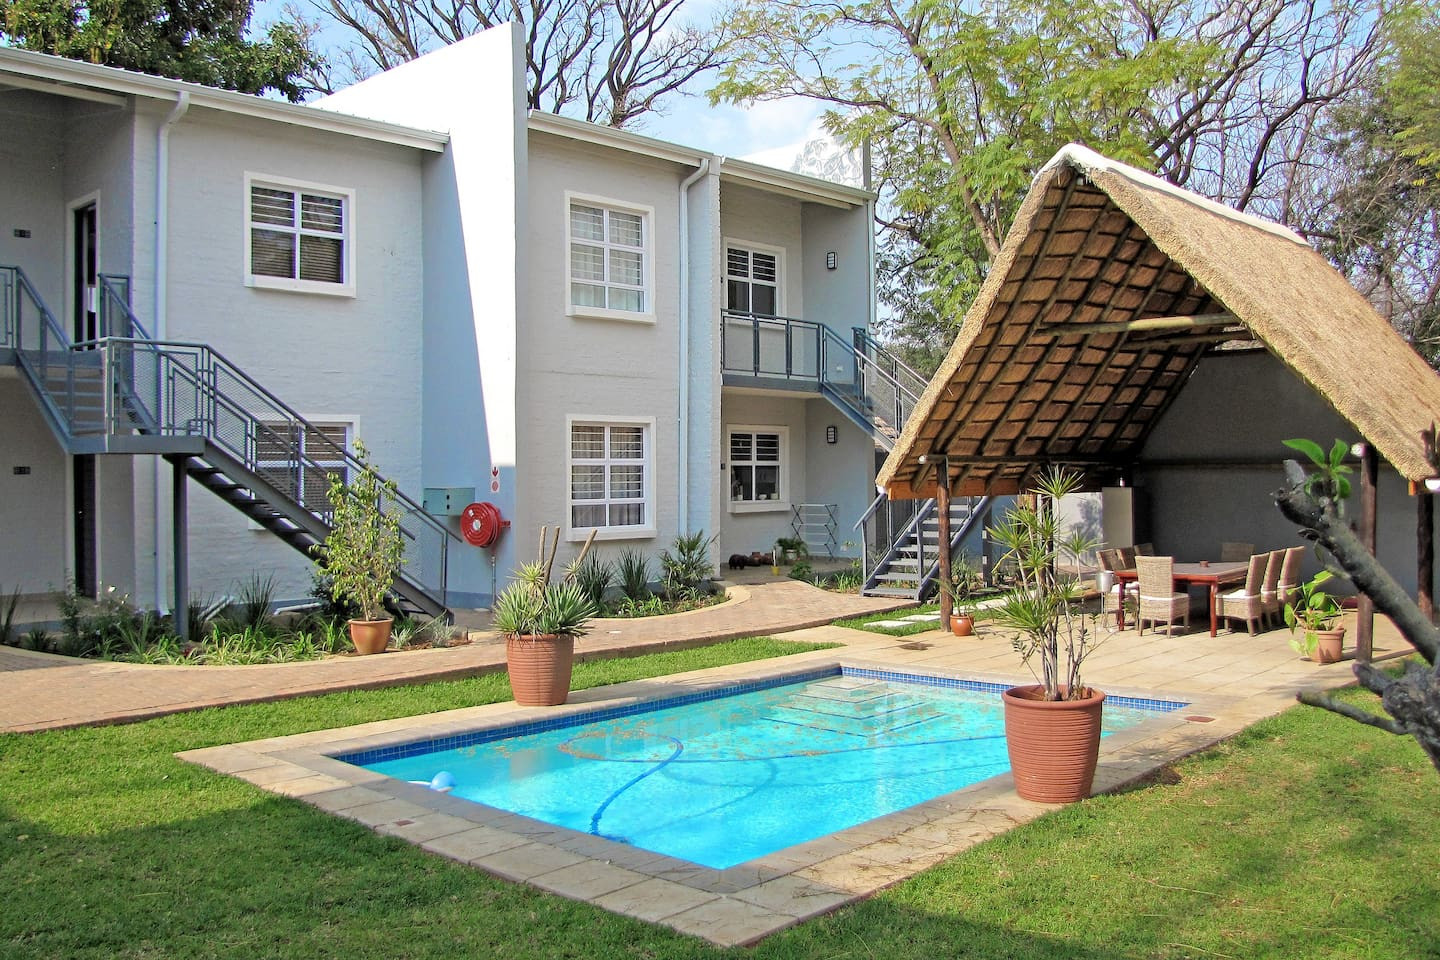 """Apartments @ 125 - units, lapa & pool """"your home away from home"""" The property by virtue of age has beautiful gardens, stunning trees and really offers a very quiet and peaceful environment."""